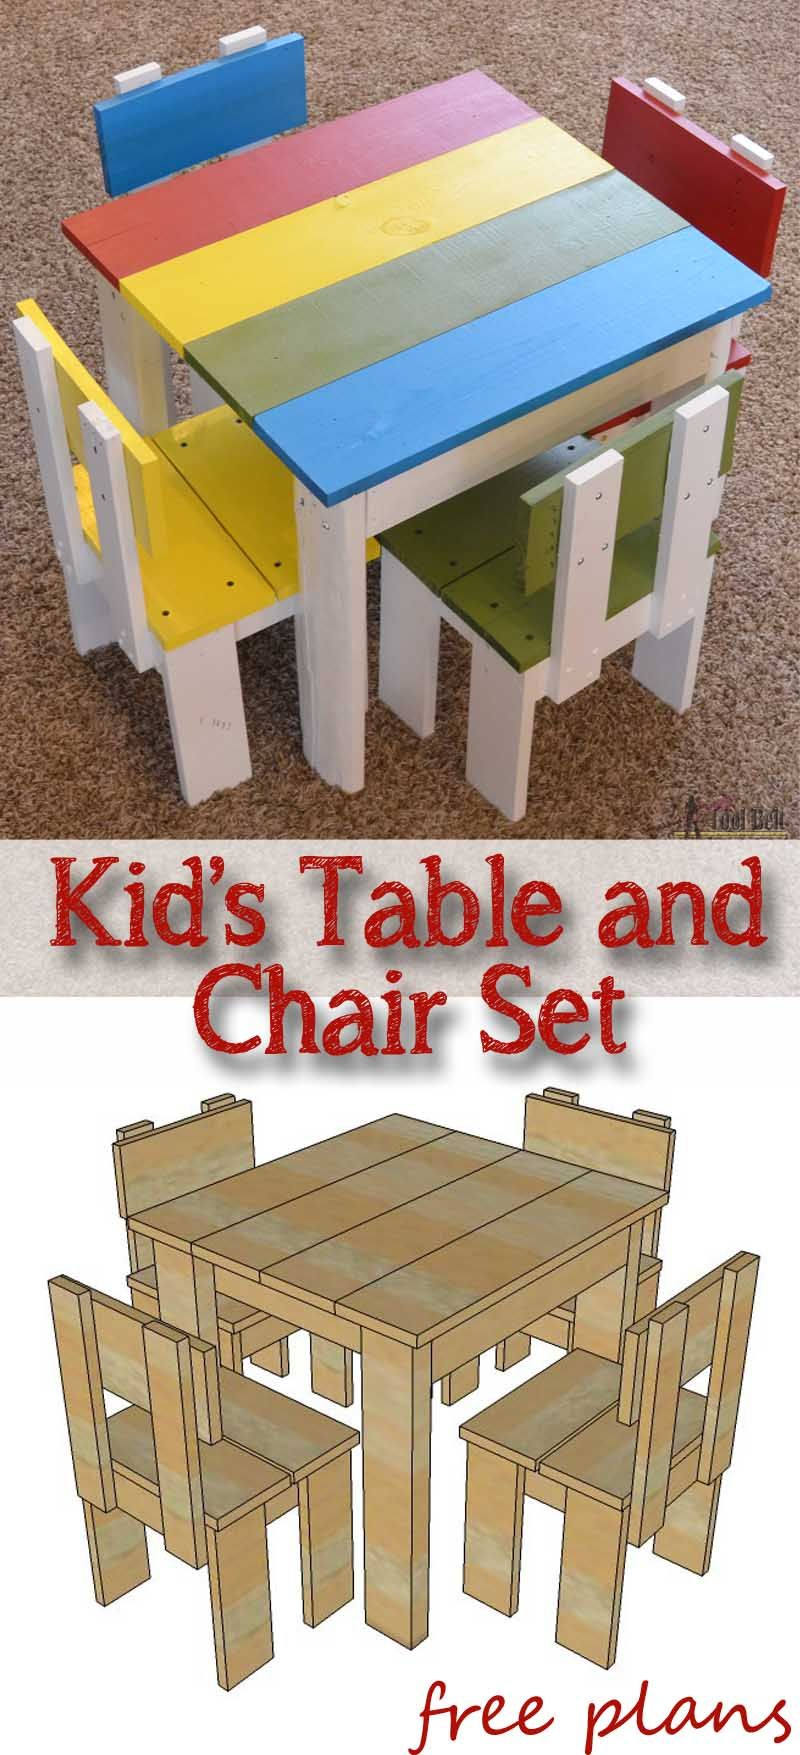 Amazing Build An Easy Table And Chair Set For The Little Kids. The Set Costs About